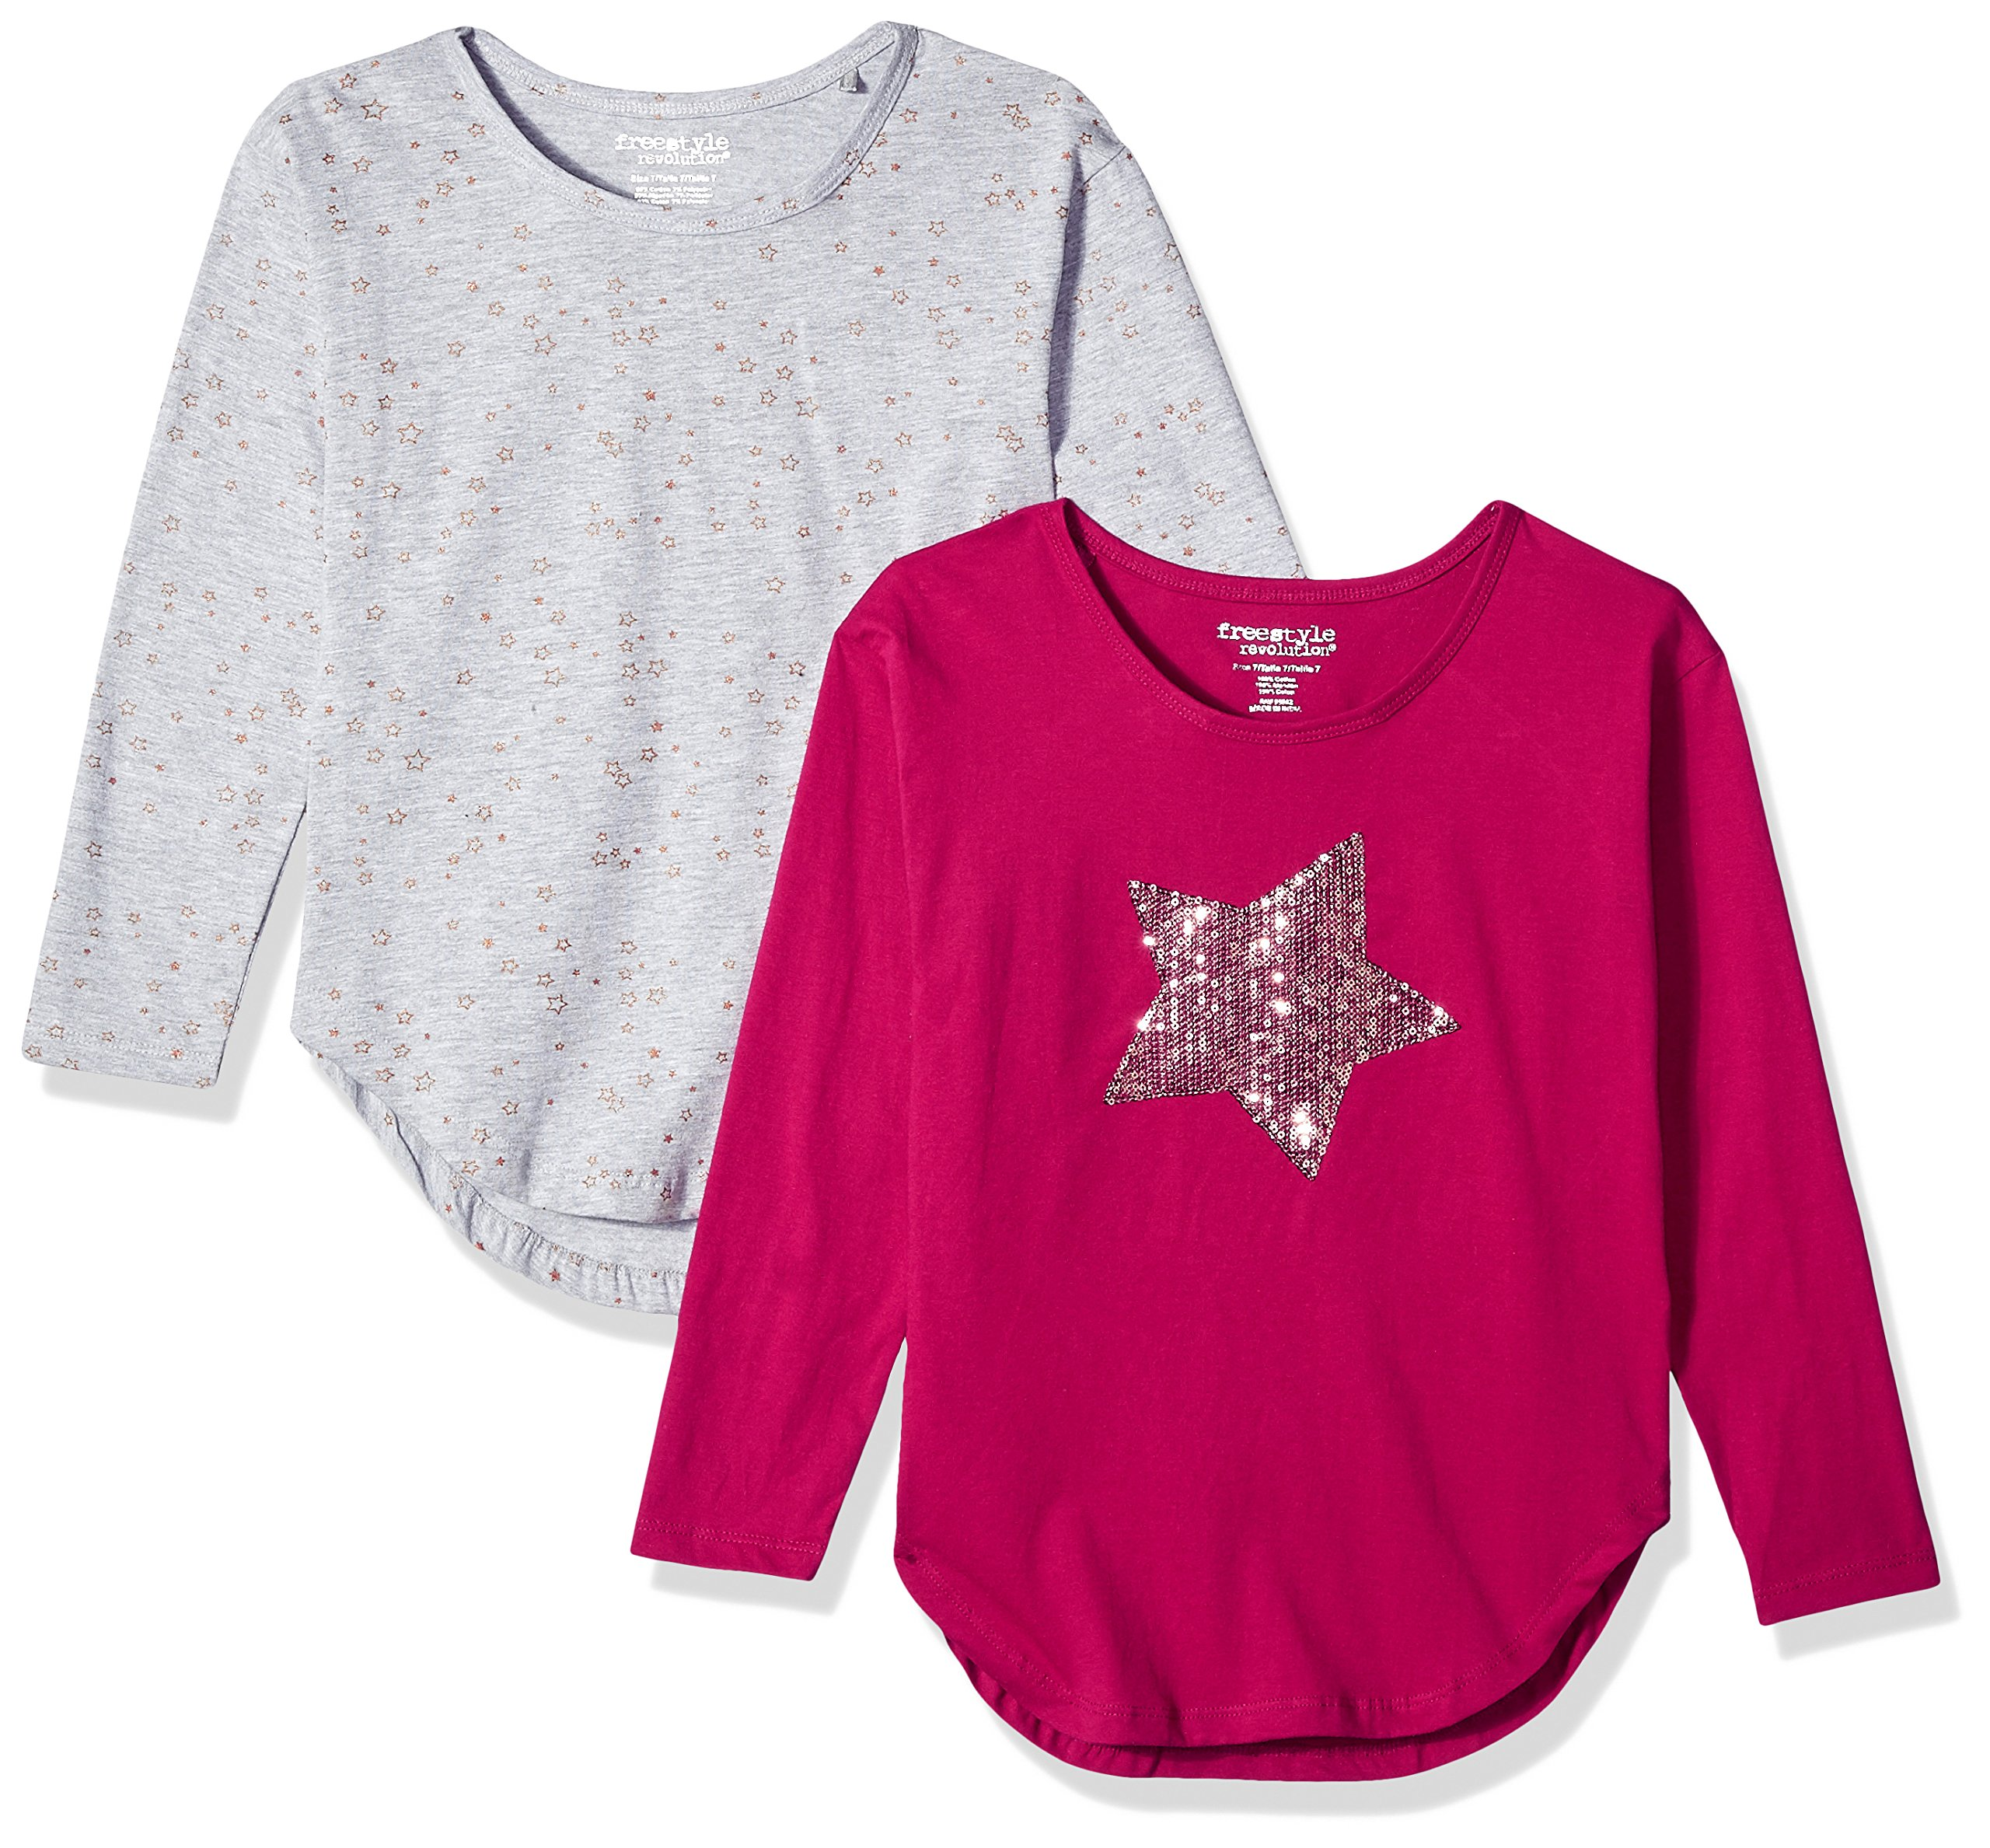 Freestyle Revolution Girls' Big 2pk Sequence Star Top Multi, 8